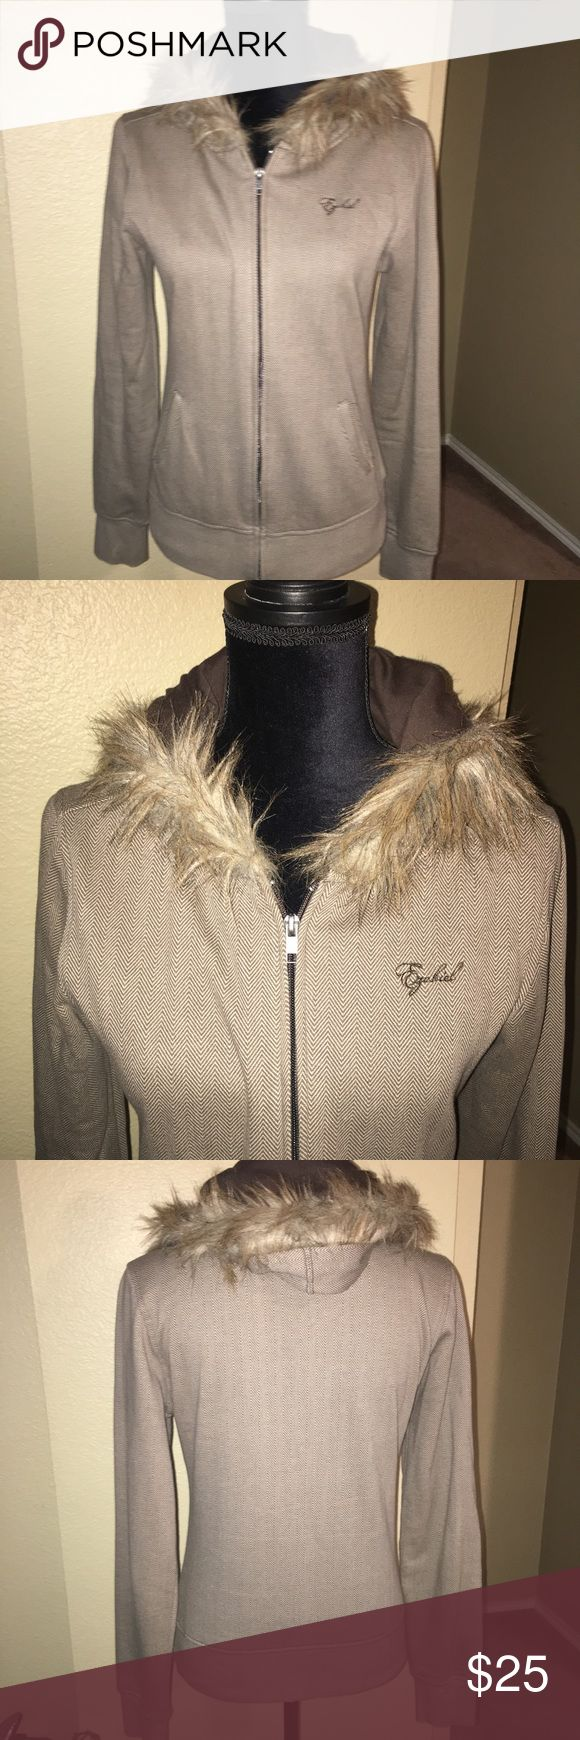 NWOT Ezekiel Girl Zip Faux Fur Trim Hoodie Jacket Pictures captures ALL!! Never worn. Neutral Taupe/Brown colors with brown lining inside the hood and trimming of faux fur! Perfect for these cool days. Size Medium, Ezekiel Girl, minimal stretch but a tailored cut. Could fit a Small and Medium. Ezekiel Jackets & Coats